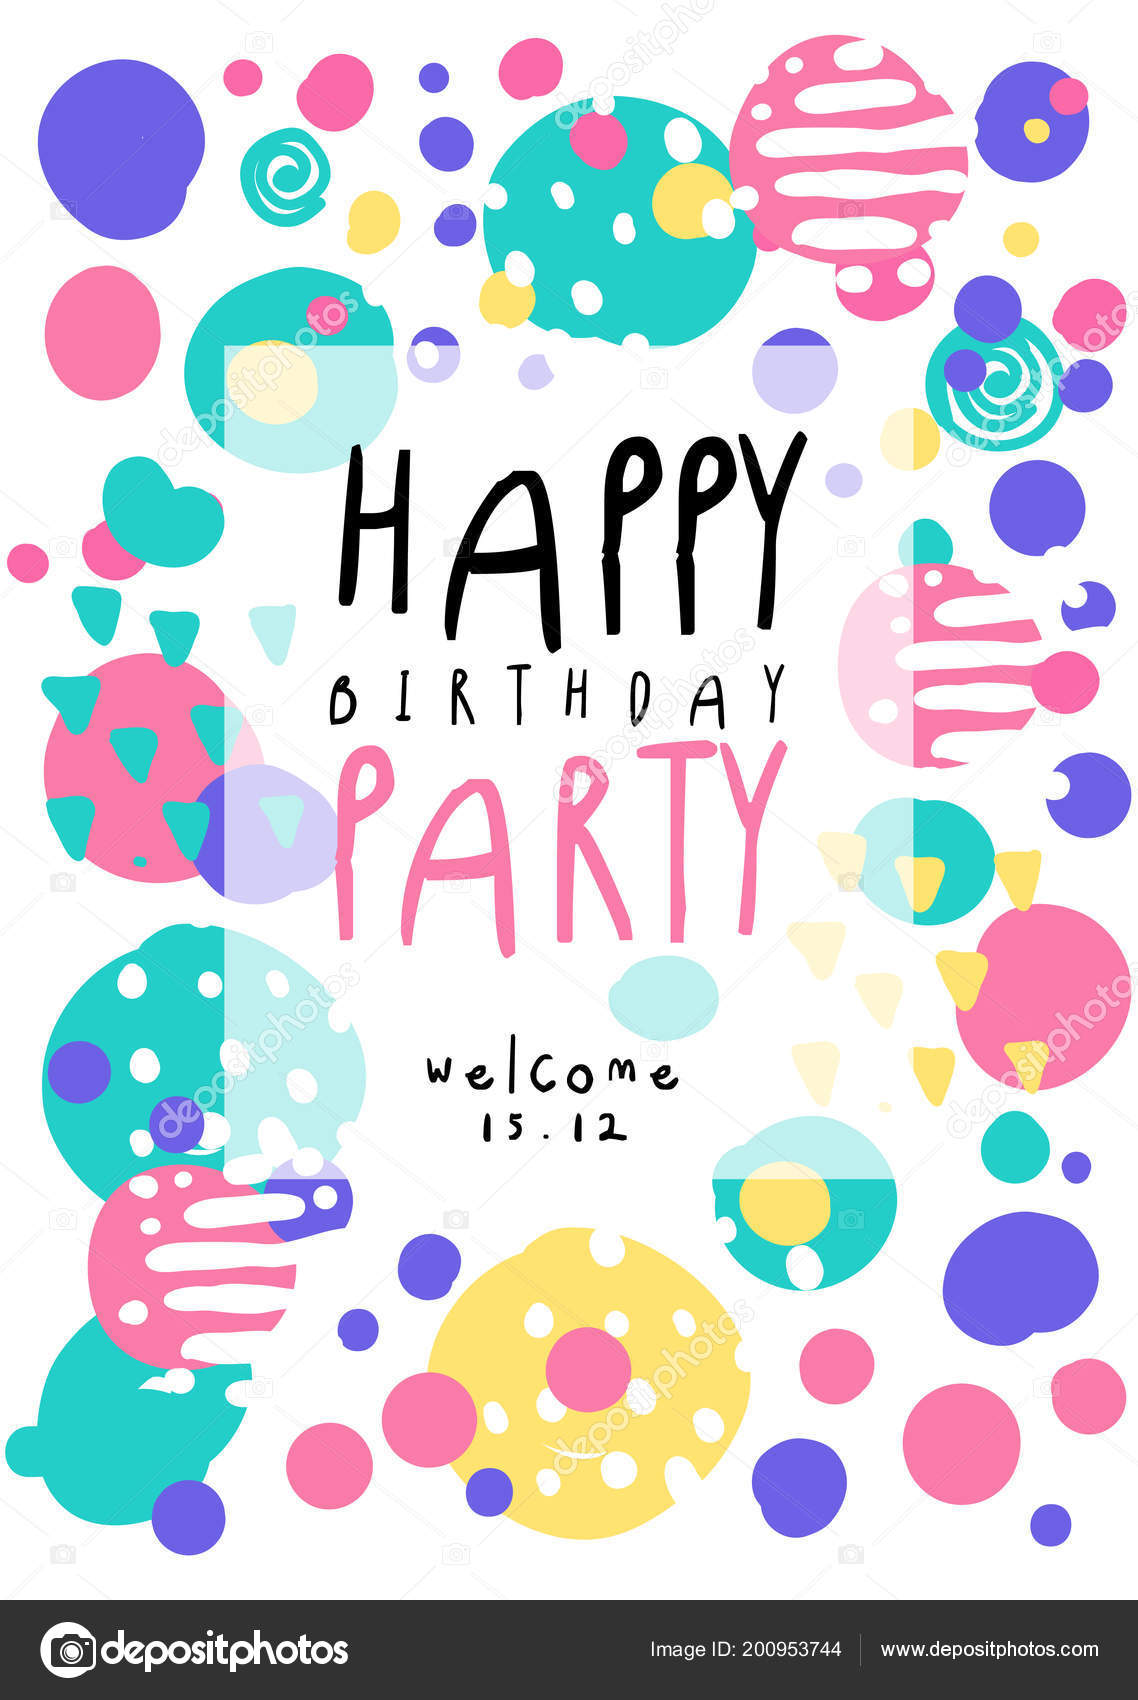 happy birthday party poster with date colorful template can be used